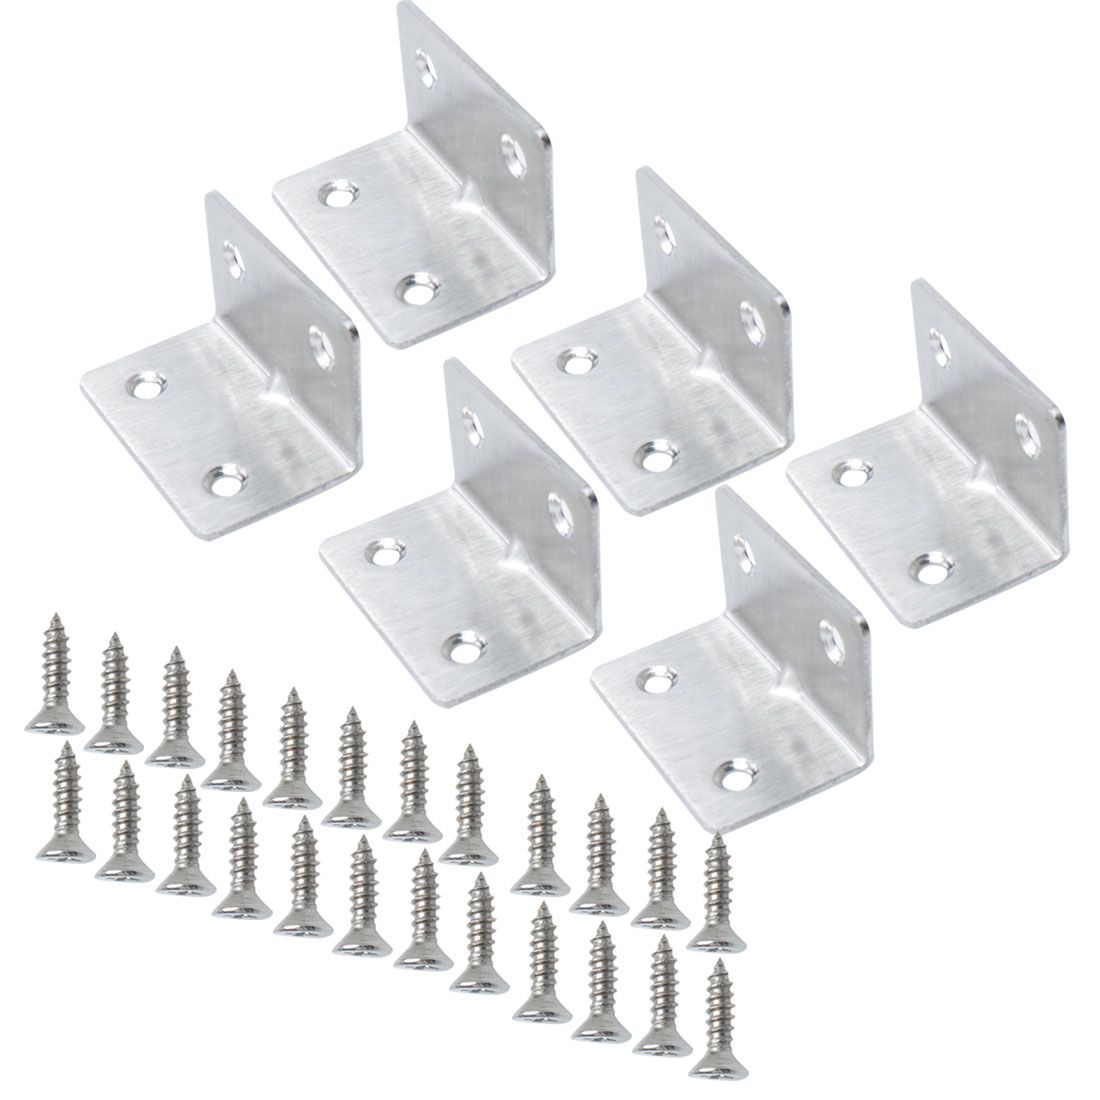 Angle Bracket Stainless Steel Corner Brace Shelf Support w Screw 33 x 33mm, 6pcs